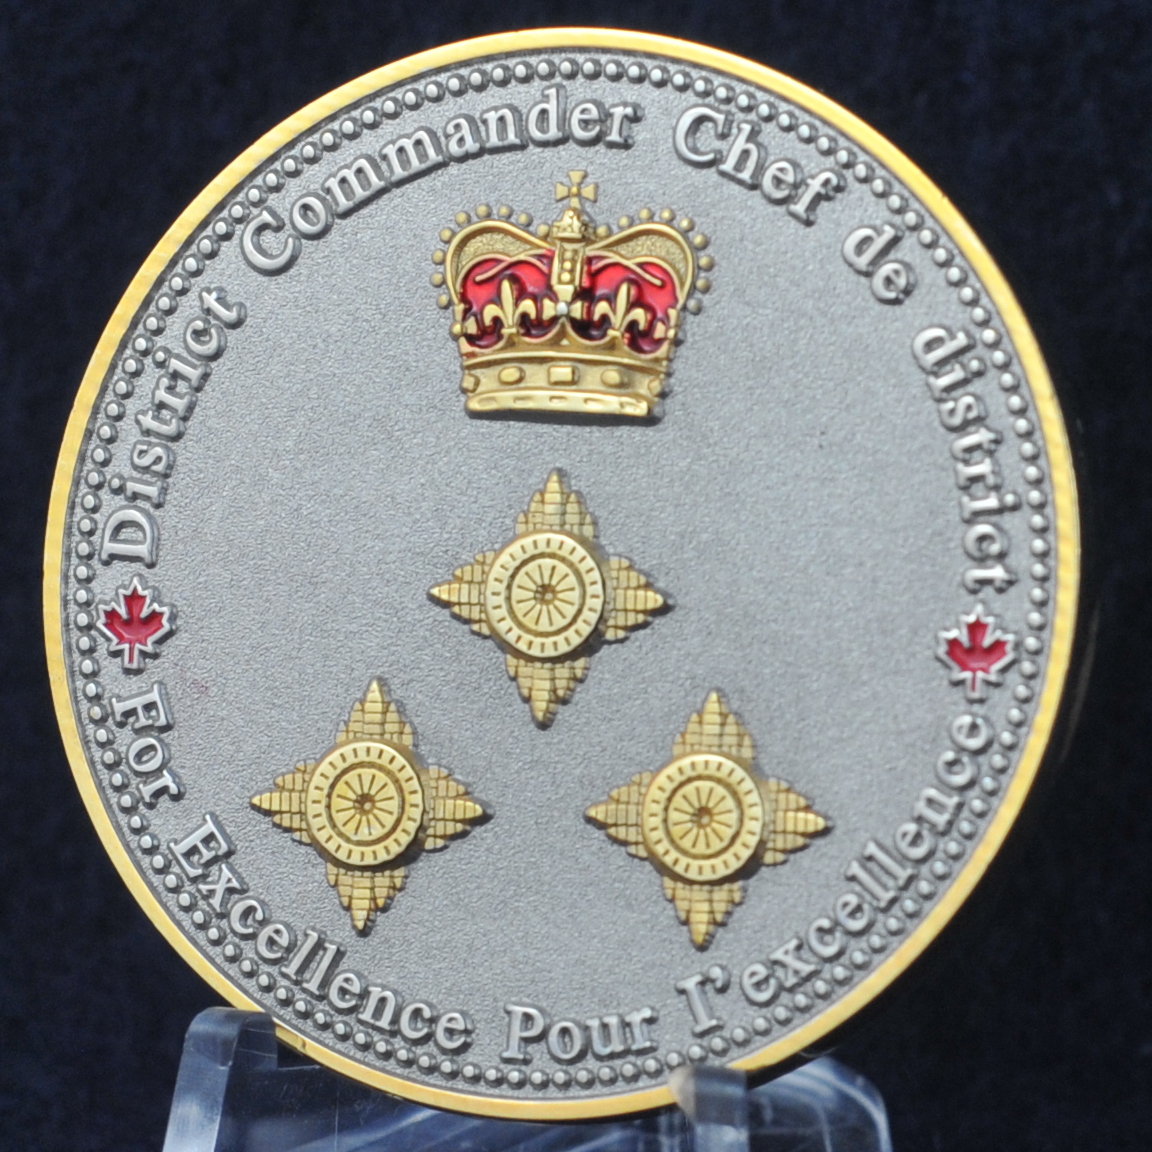 RCMP Lower Mainland District Commander - Challengecoins.ca